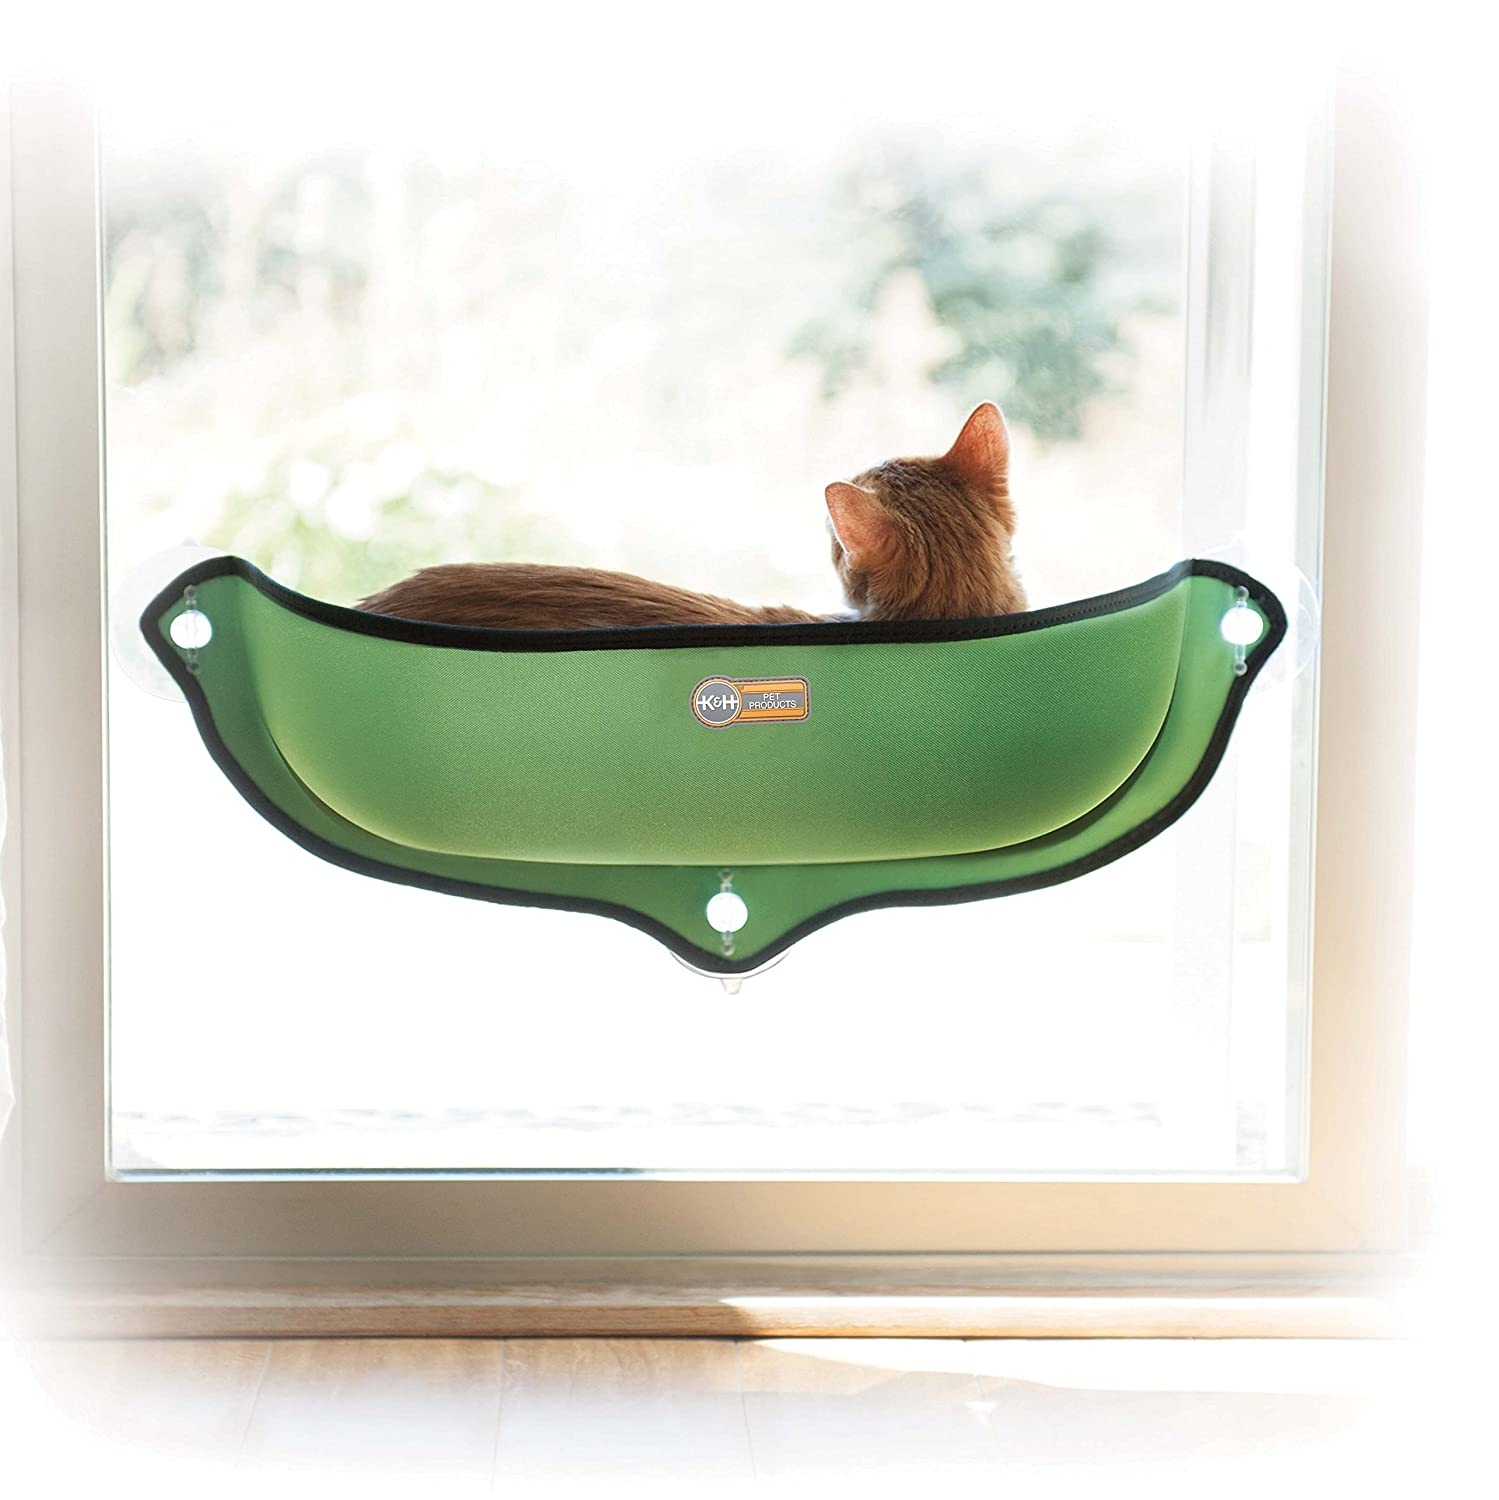 K&H Manufacturing EZ Mount Window Bed Kitty Sill, 27-Inch X 11-Inch, Tan 9191